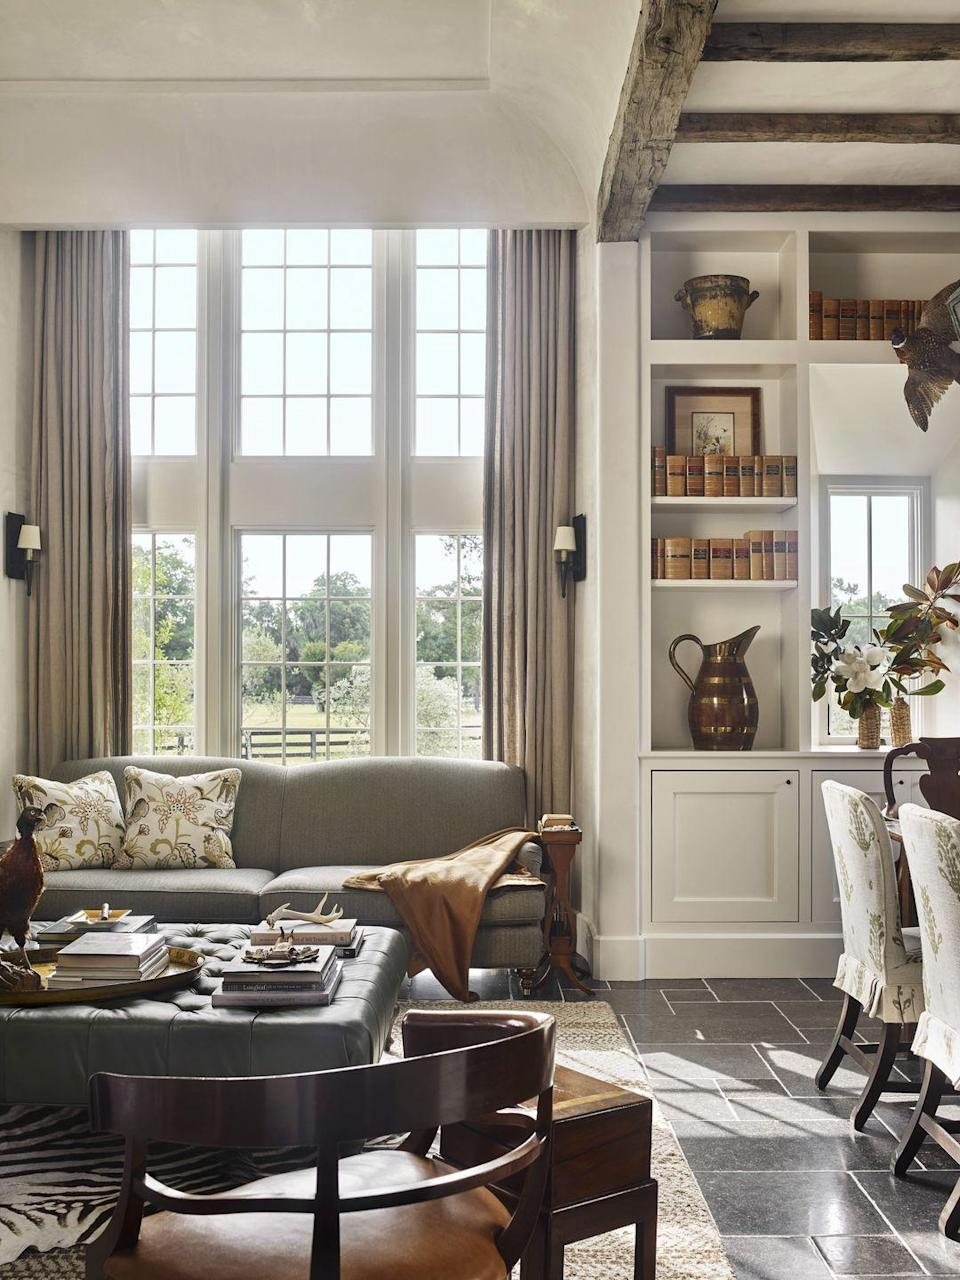 """<p>Webb and Block's coastal Carolina lodge is greatly inspired by the architecture of the British Arts and Crafts movement, and this living room feels reminiscent of a well-traveled Englishman's lair, full of collected items from adventures abroad with design sensibility from his homeland. The <a href=""""http://www.mrshoward.com/"""" rel=""""nofollow noopener"""" target=""""_blank"""" data-ylk=""""slk:Mrs. Howard"""" class=""""link rapid-noclick-resp"""">Mrs. Howard</a> sofa invites one to reflect on the day's wins, while the layered space sparks creativity and dreams of the next getaway. The ottoman leather is <a href=""""https://www.hollyhunt.com/"""" rel=""""nofollow noopener"""" target=""""_blank"""" data-ylk=""""slk:Holly Hunt for Jerry Pair"""" class=""""link rapid-noclick-resp"""">Holly Hunt for Jerry Pair</a> and wool upholstery is <a href=""""https://www.hollandandsherry.com/"""" rel=""""nofollow noopener"""" target=""""_blank"""" data-ylk=""""slk:Holland & Sherry"""" class=""""link rapid-noclick-resp"""">Holland & Sherry</a>.</p>"""